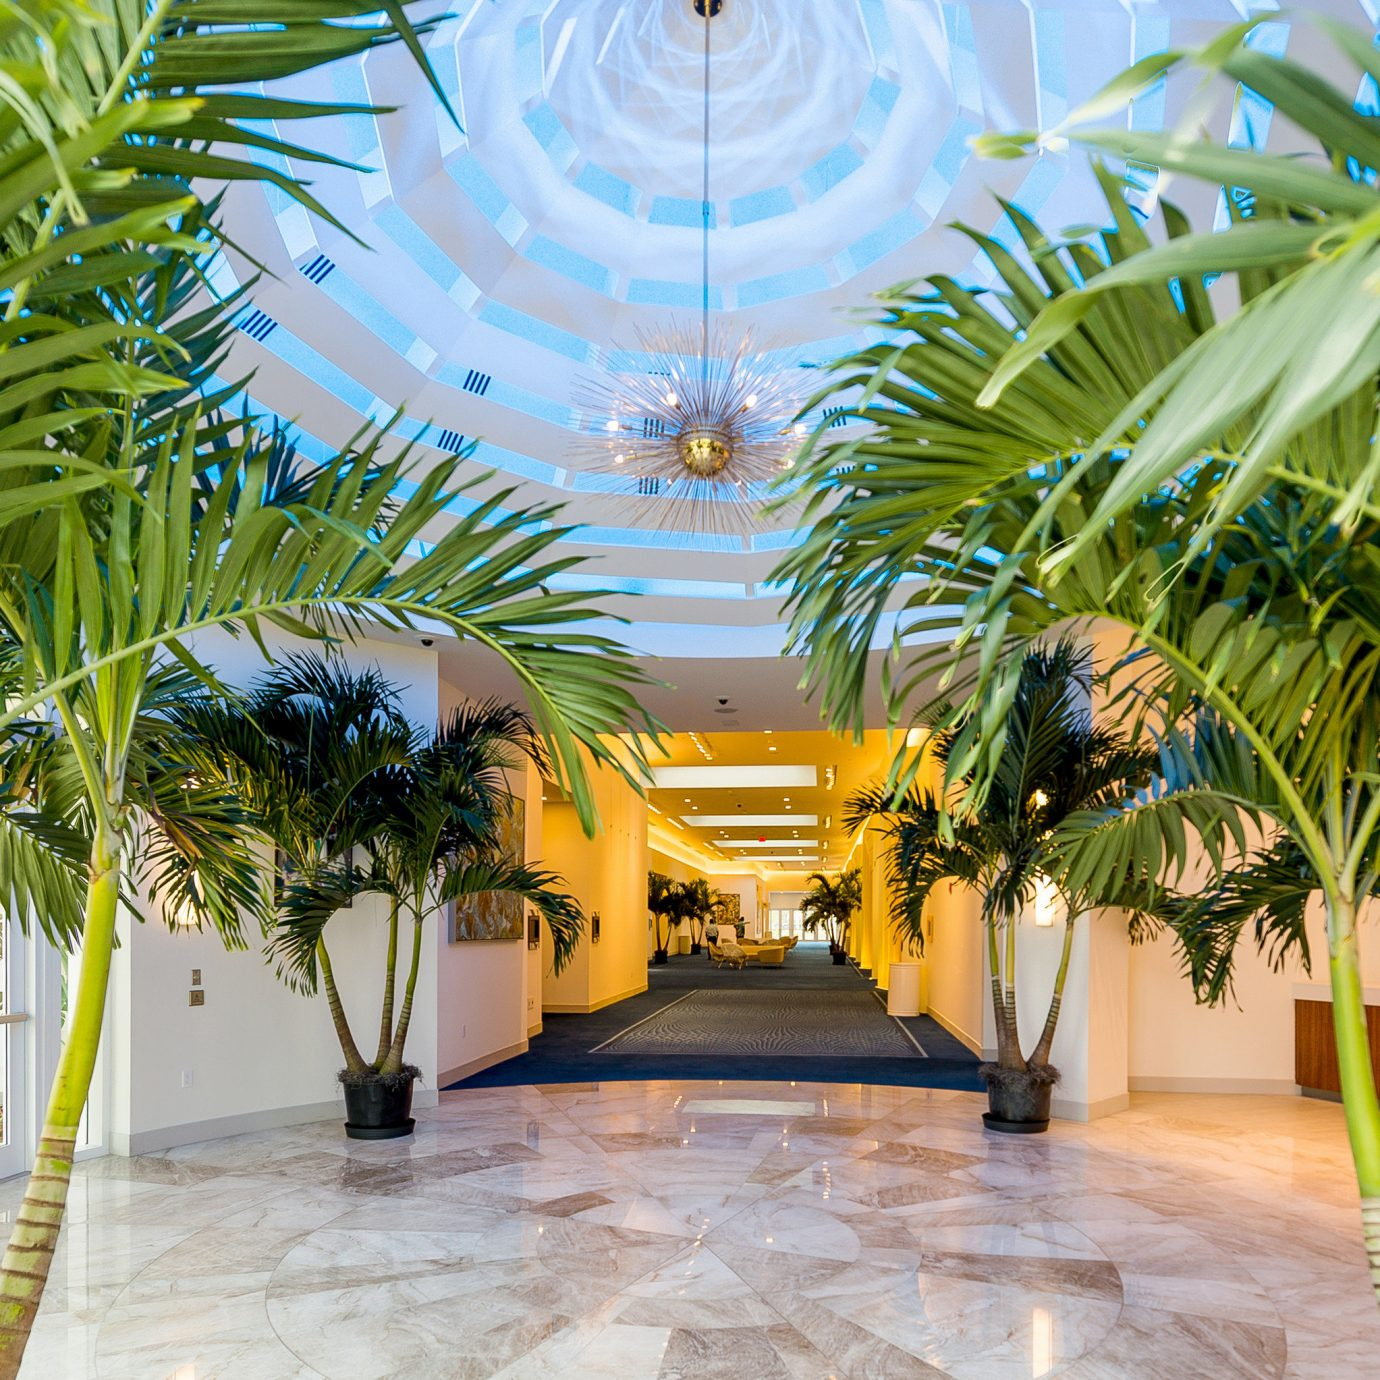 plant palm tree arecales palm tree outdoor structure Resort